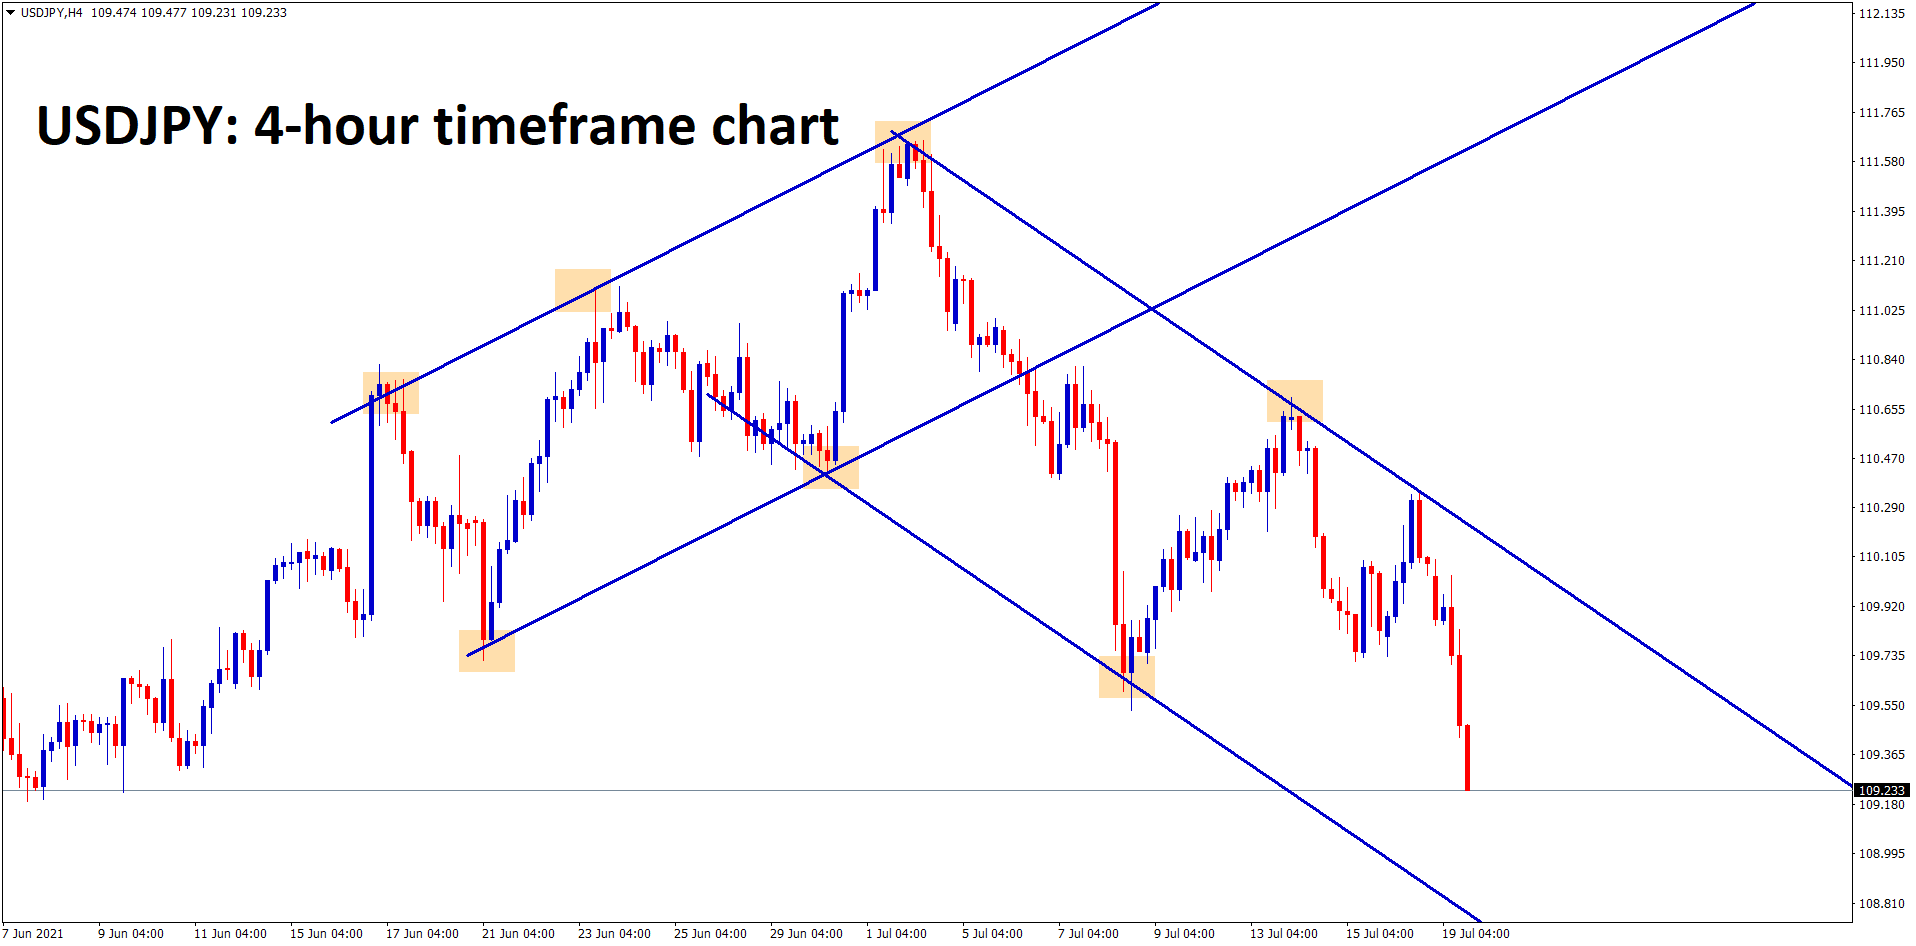 USDJPY continues to fall down in an Descending Channel pattern